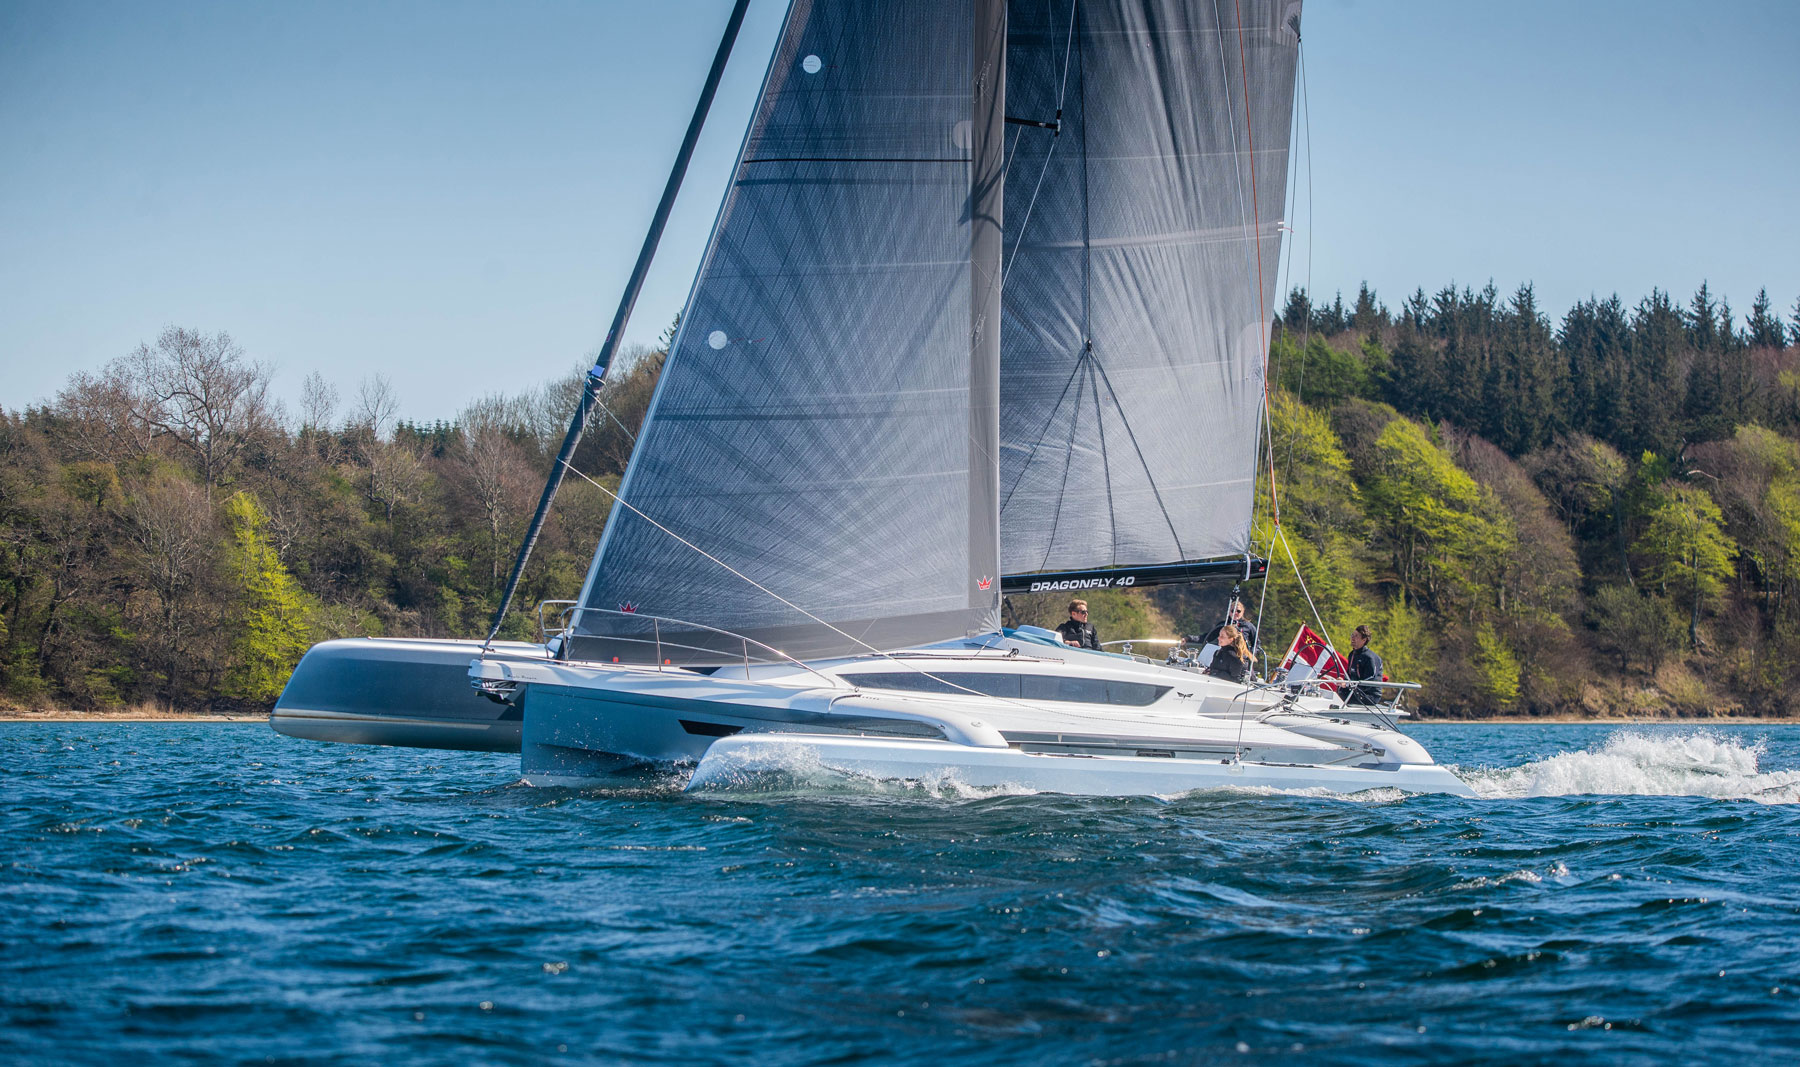 DRAGONFLY 40 WINS MULTIHULL OF THE YEAR